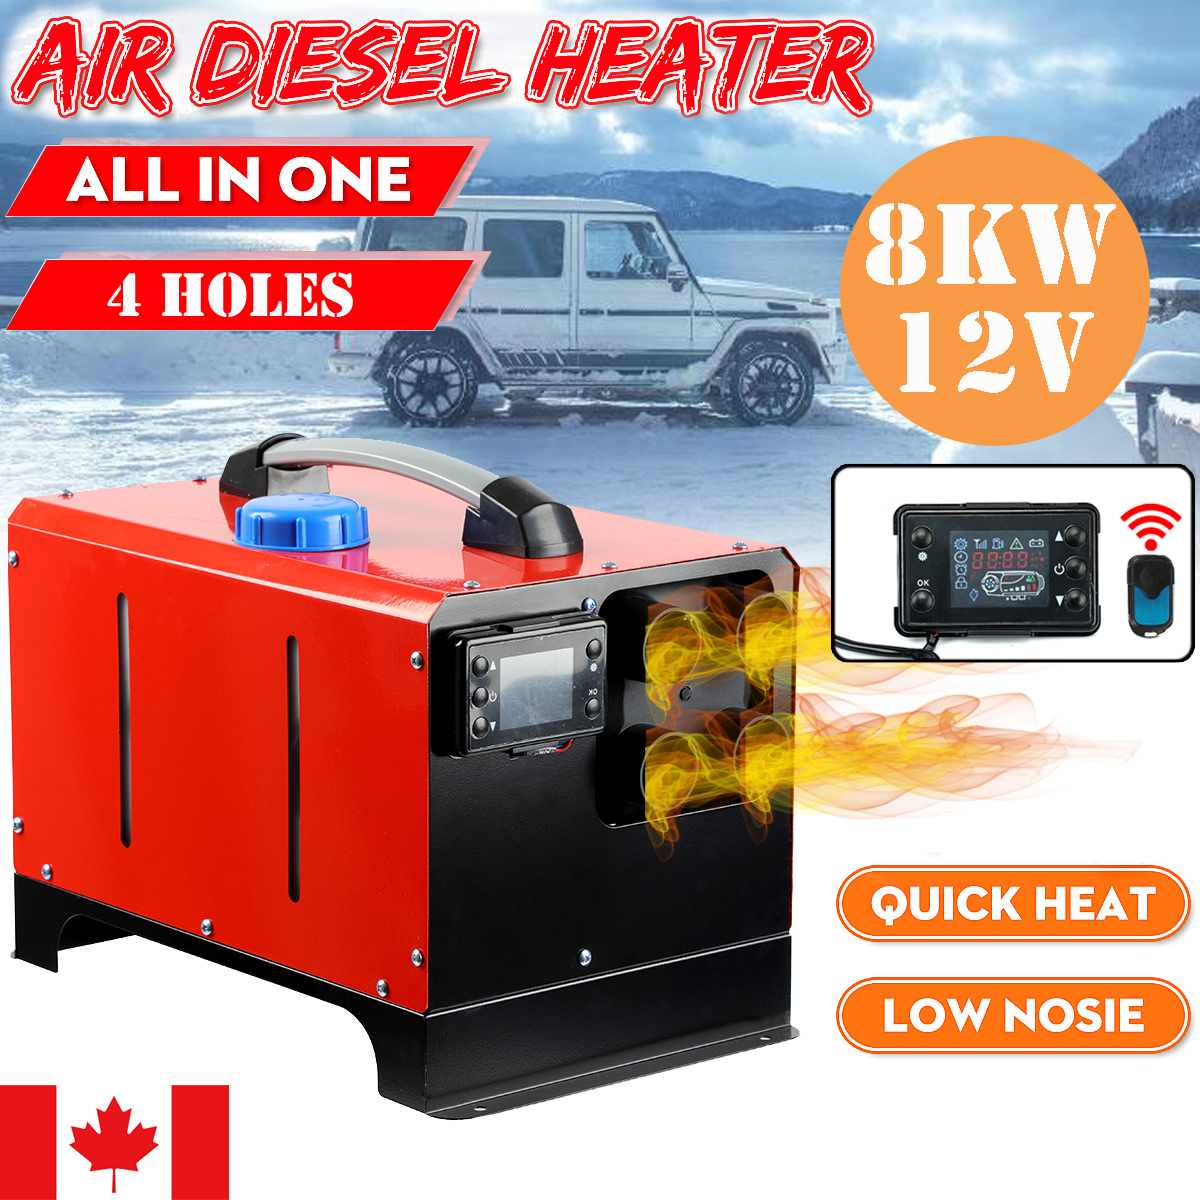 2KW 12V Air Diesel Heater Kit 1 Hole for Car Boat Truck Bus Motorhome Switch